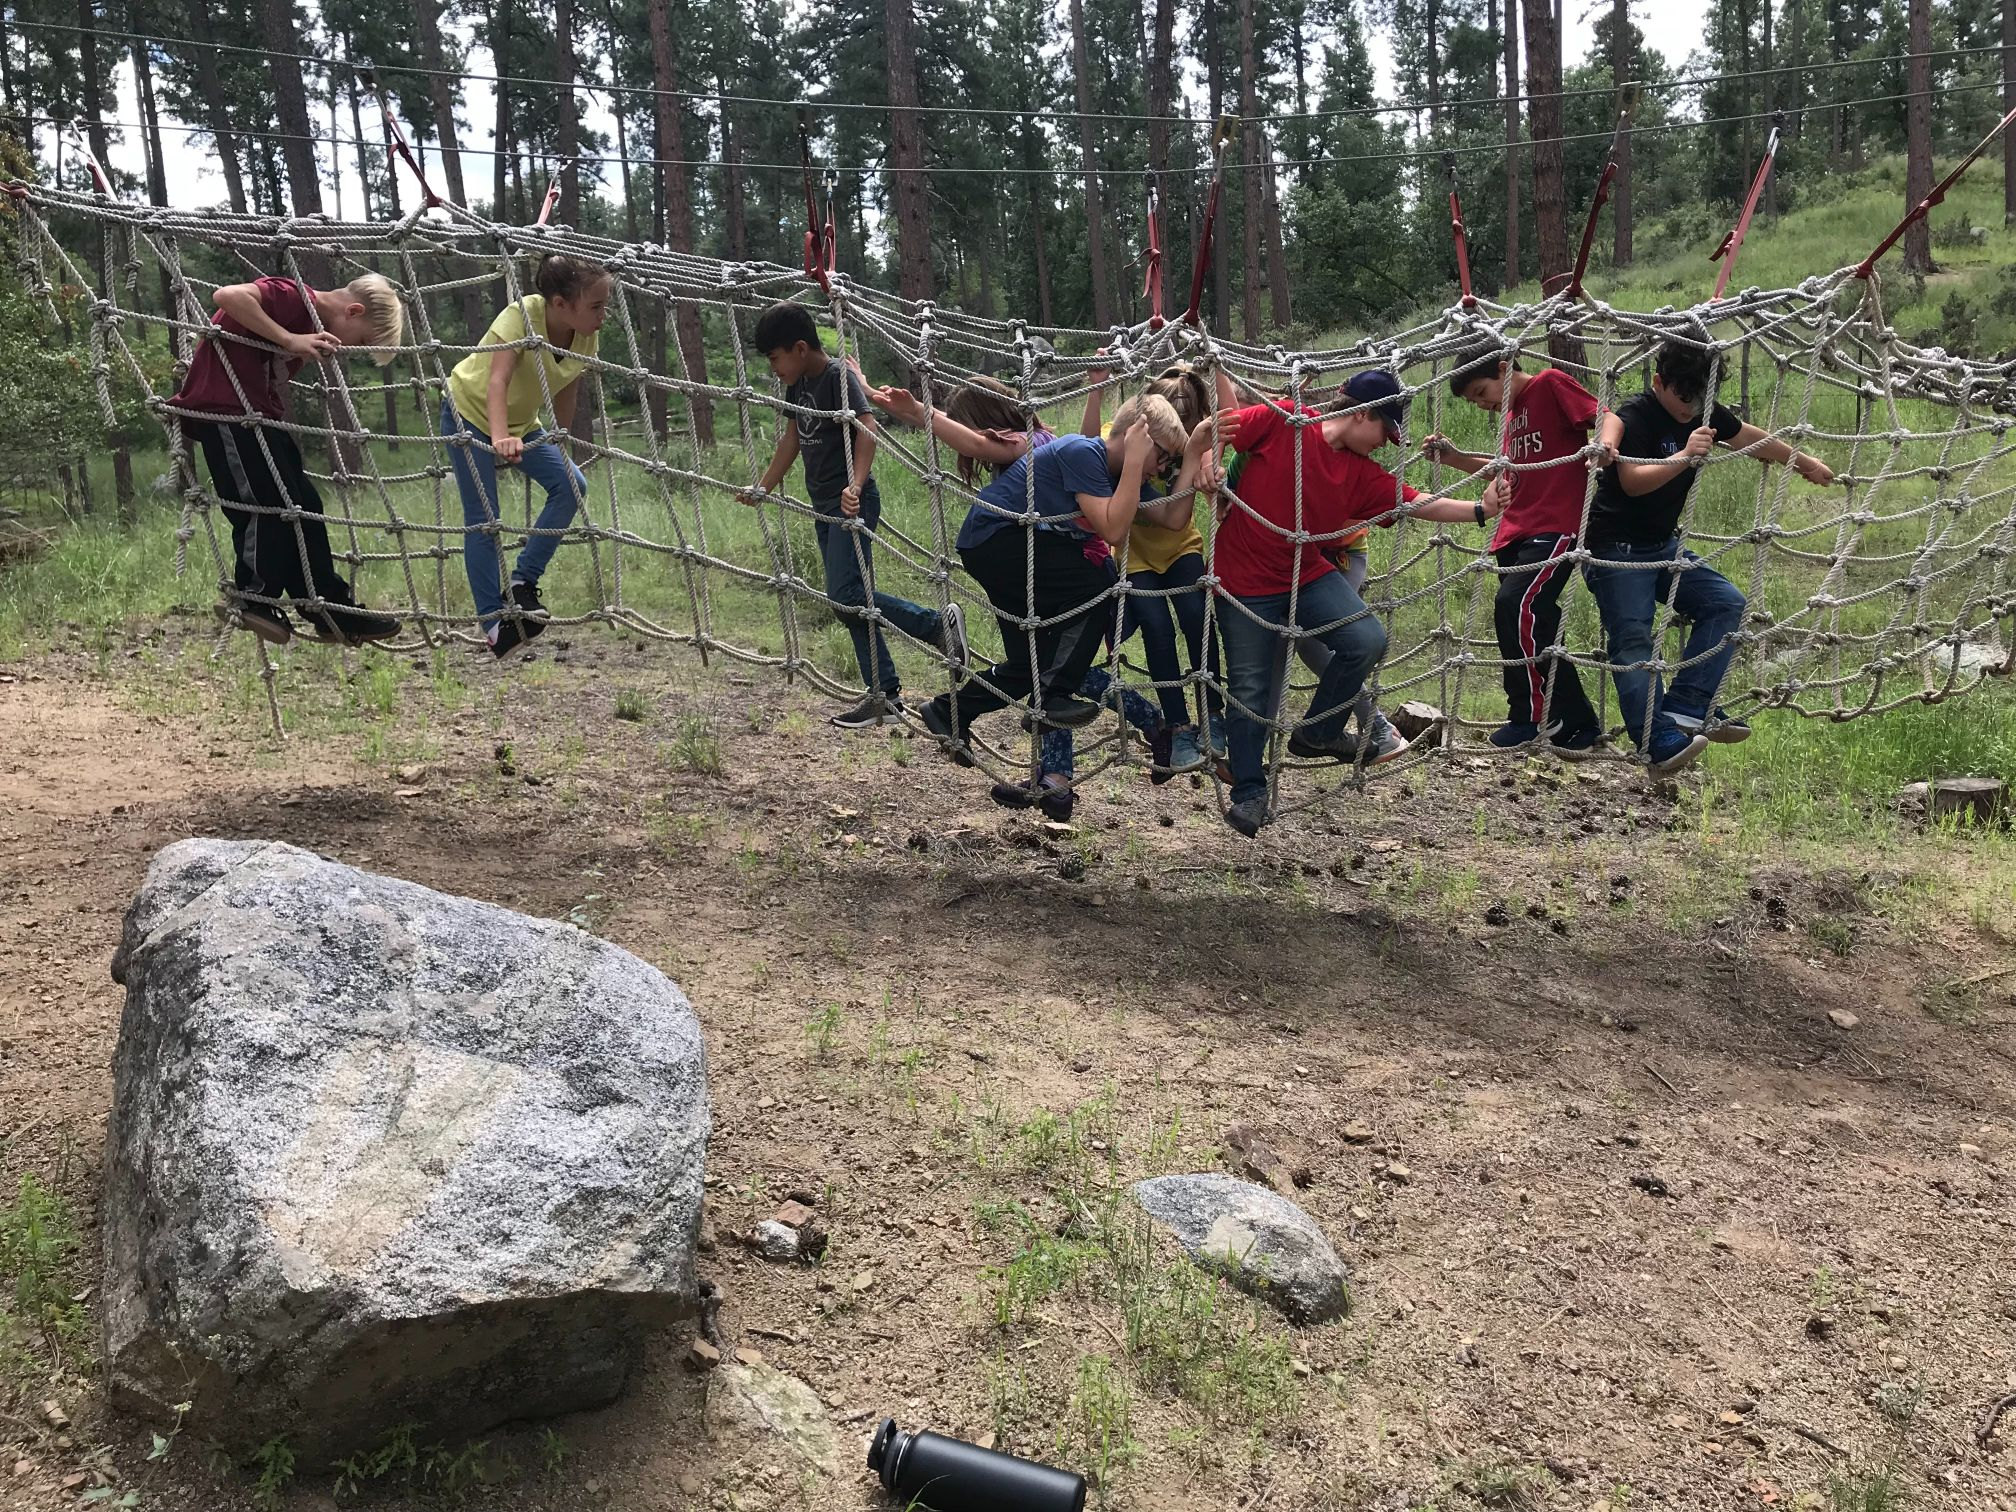 People doing the low ropes course